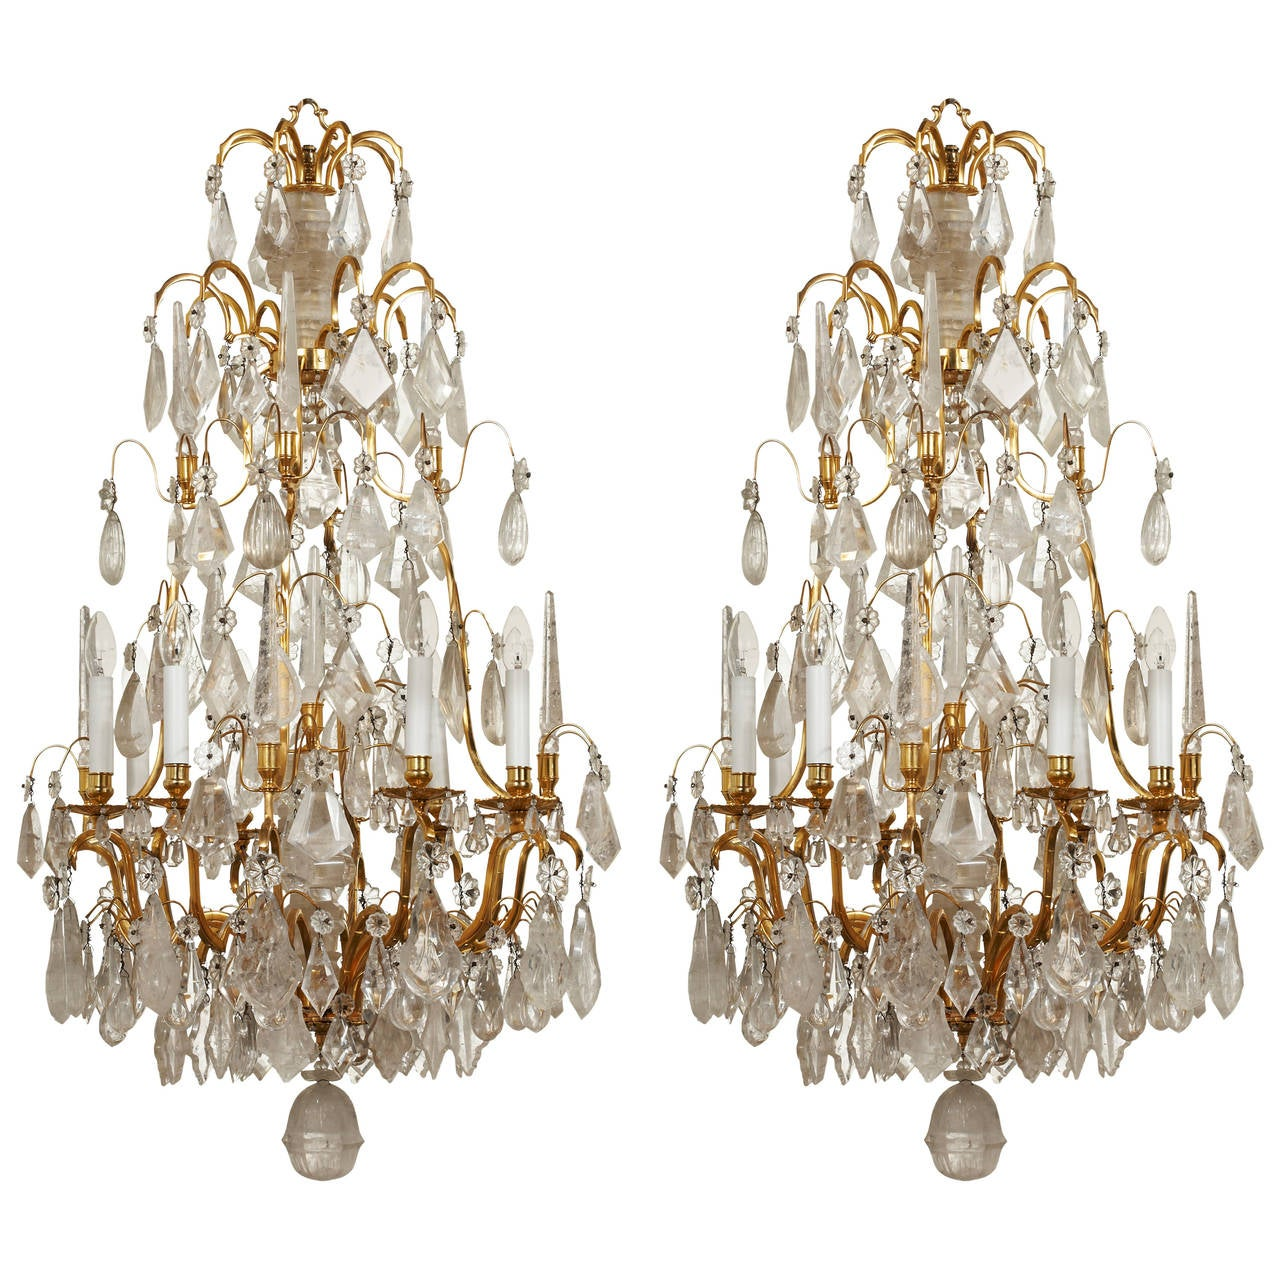 Unique French 18th Century Style Rock Crystal Chandeliers